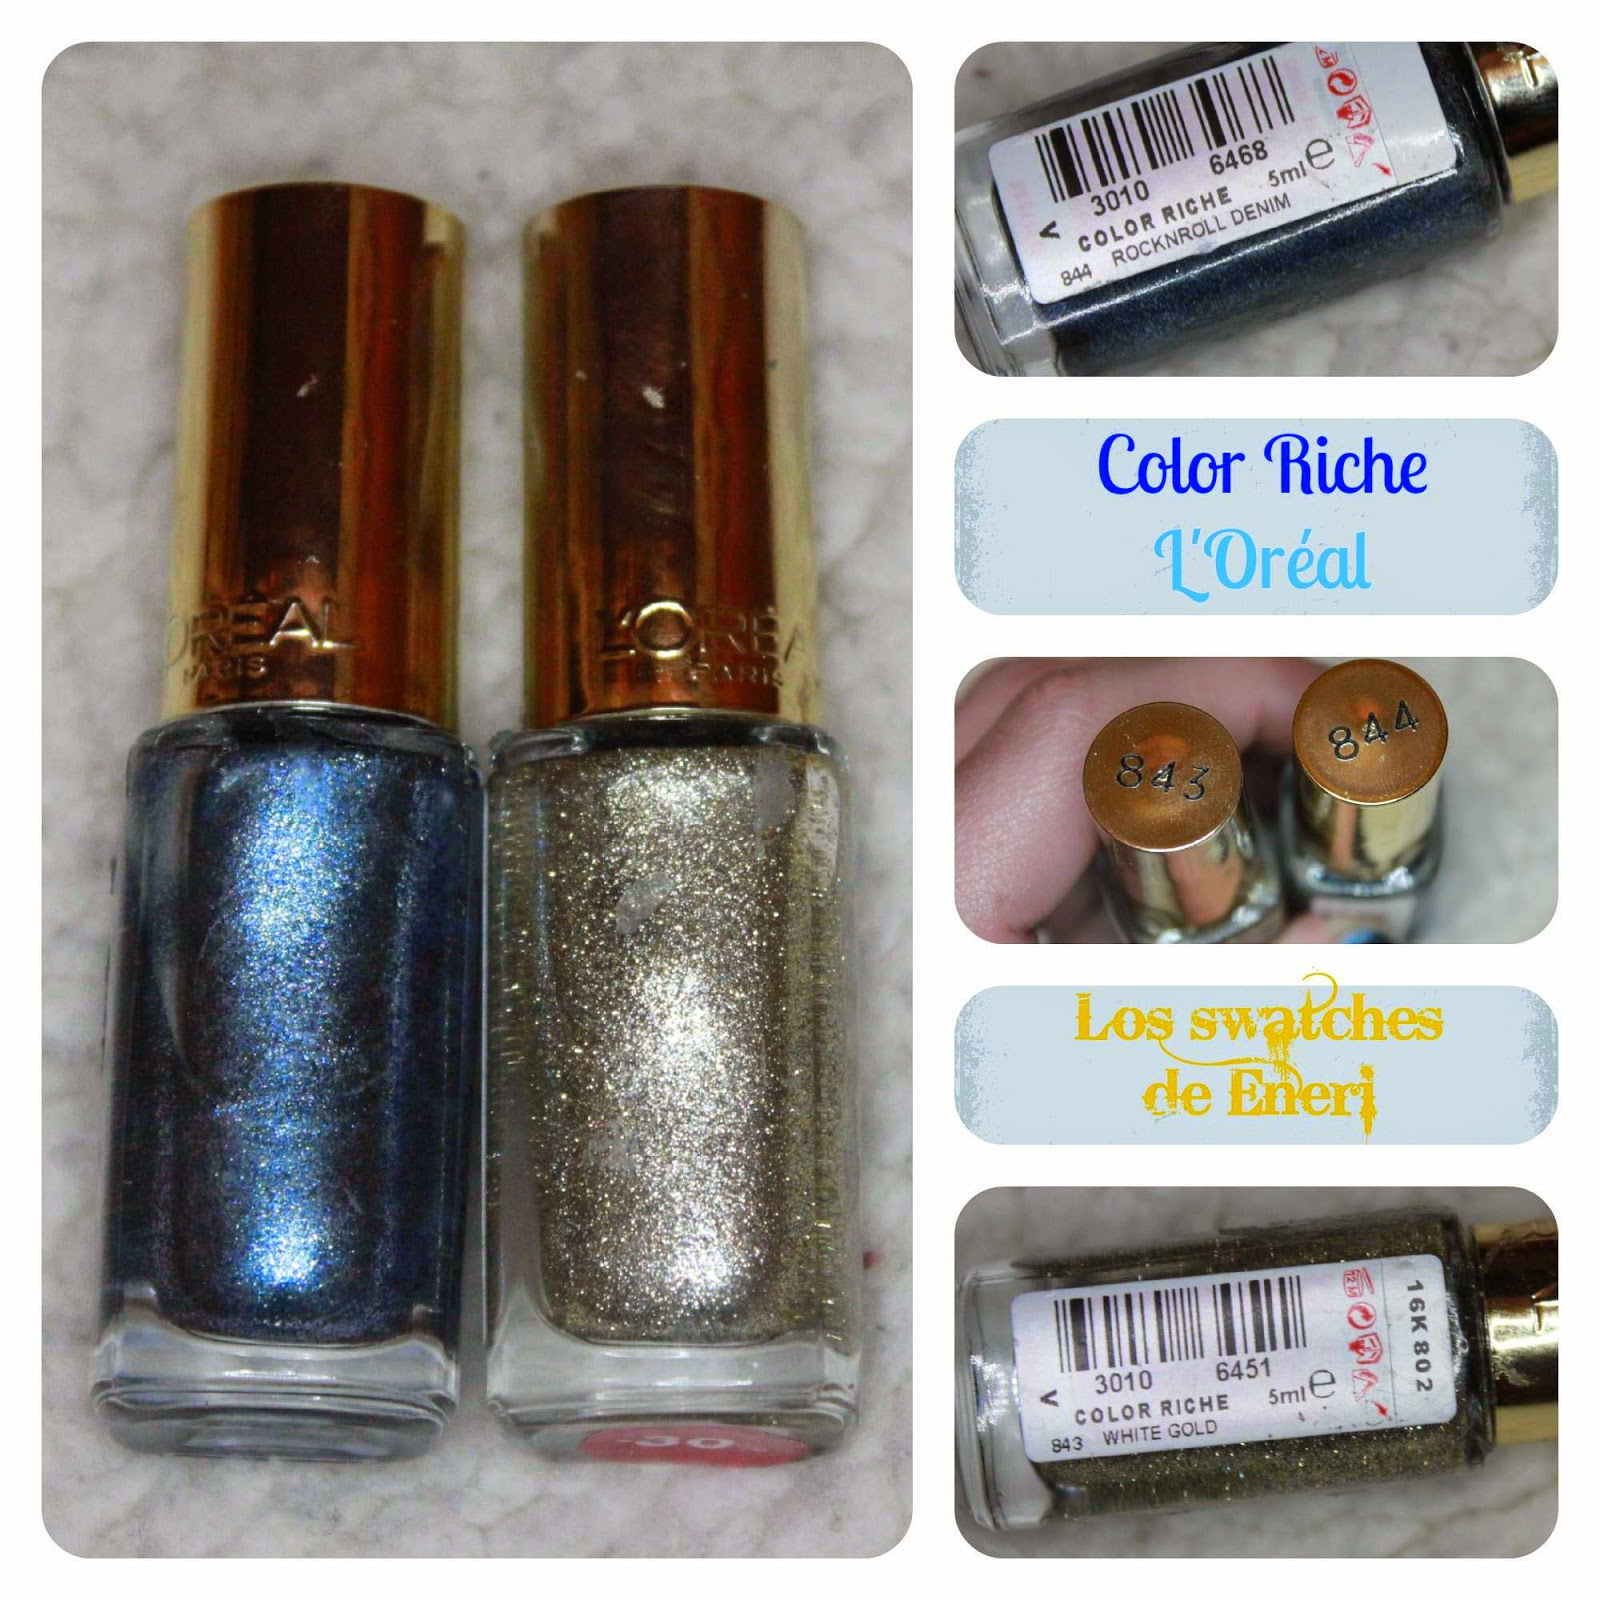 Loreal Color Riche Nail Polish 843 White Gold - To Bend Light